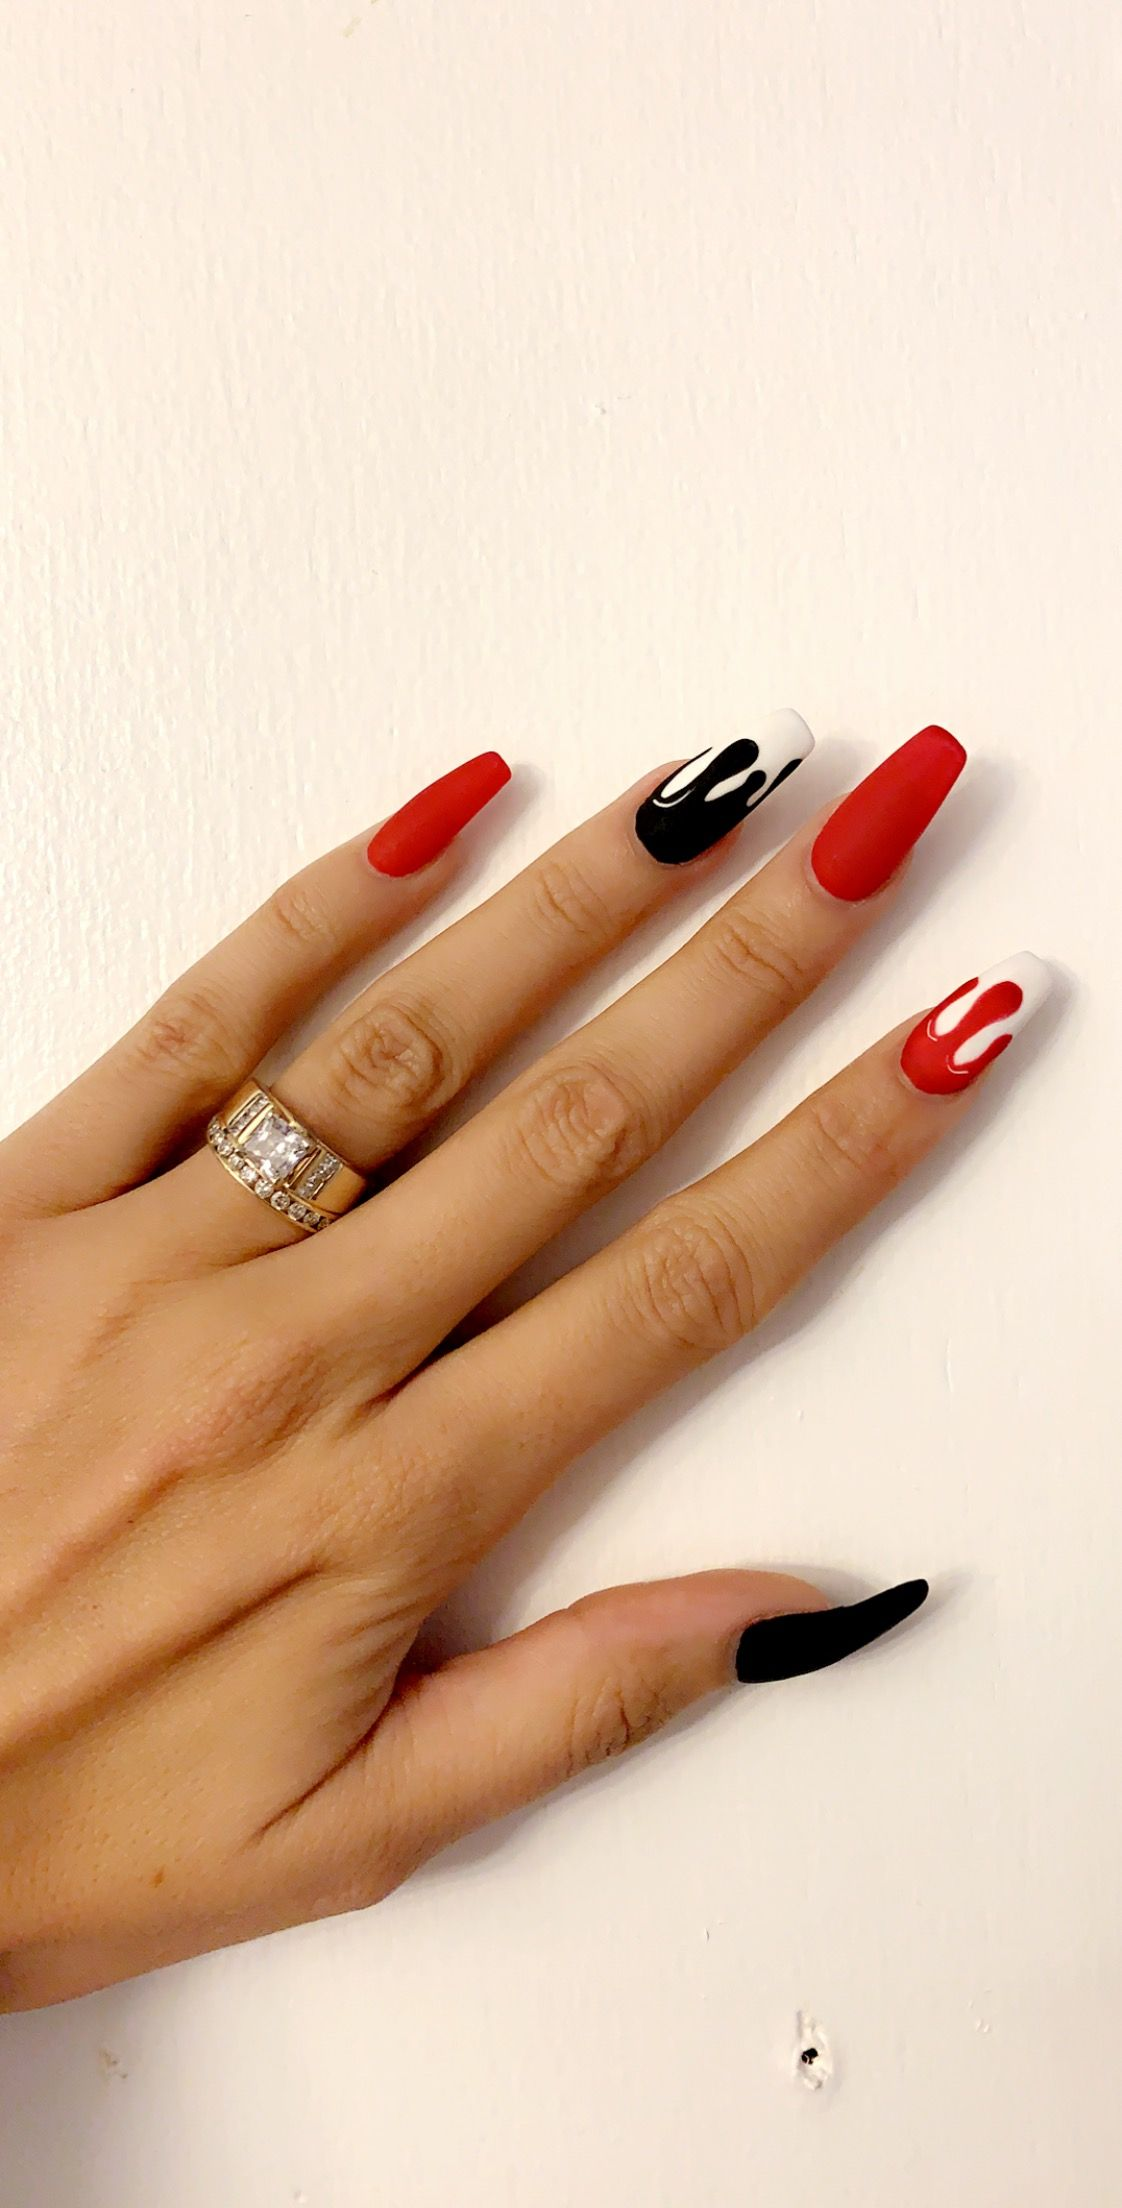 22 Wildly Popular Halloween Nail Art Designs I Am Bored Cute Nails Fashion Nails Gothic Nails